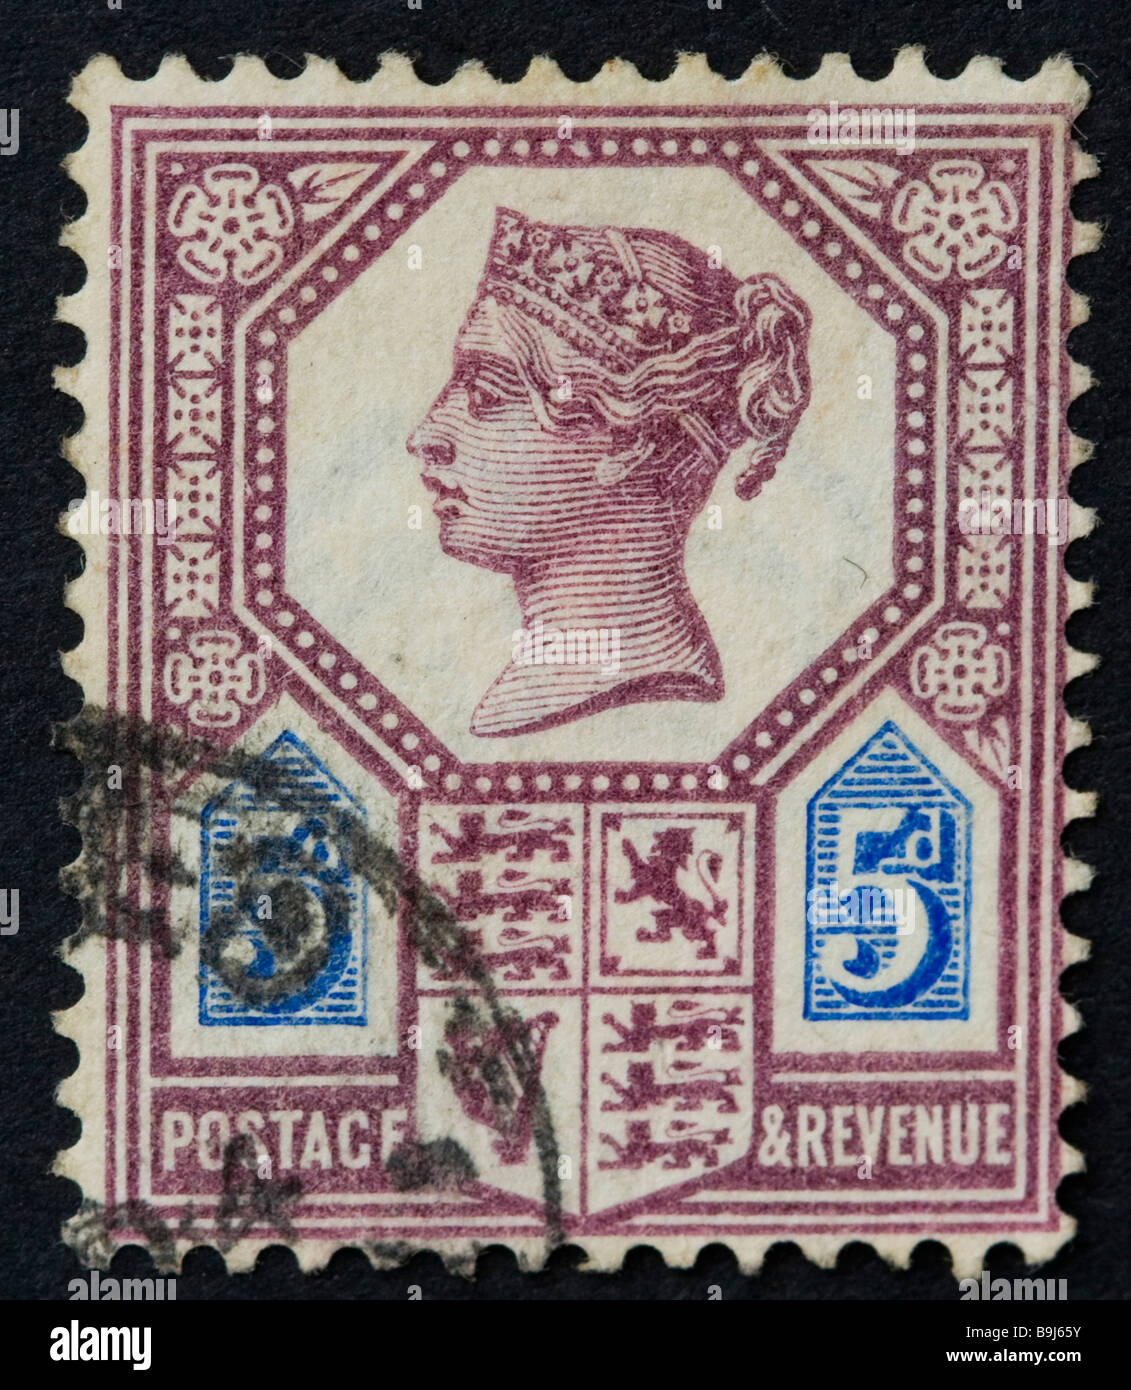 British Victorian 5d postage stamp 1887-1900 SG 207 purple and blue, franked, used - Stock Image